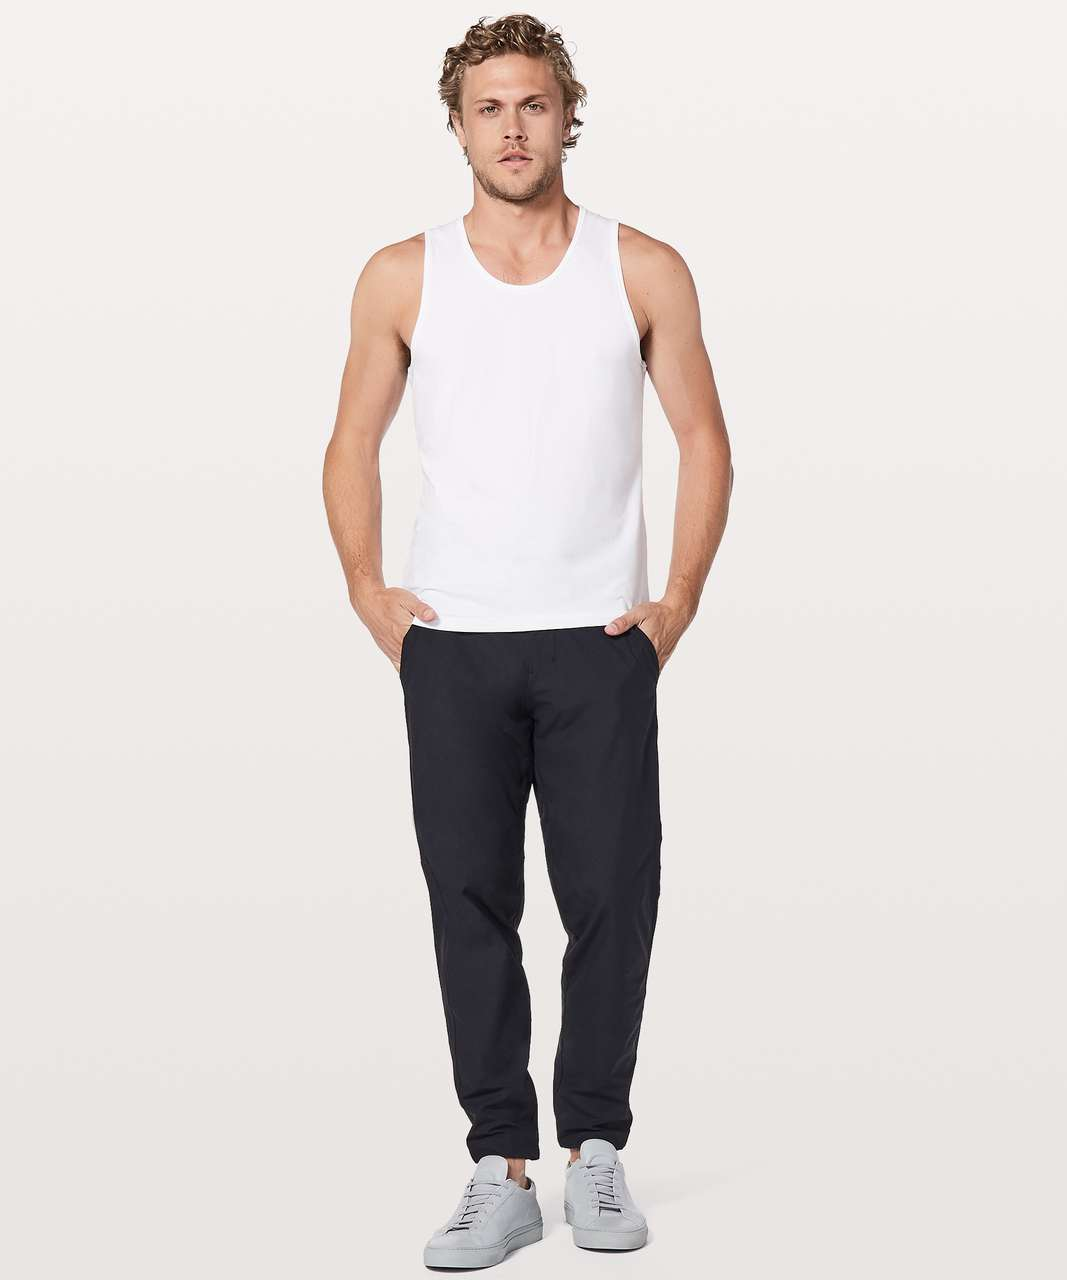 Lululemon 5 Year Basic Tank - White